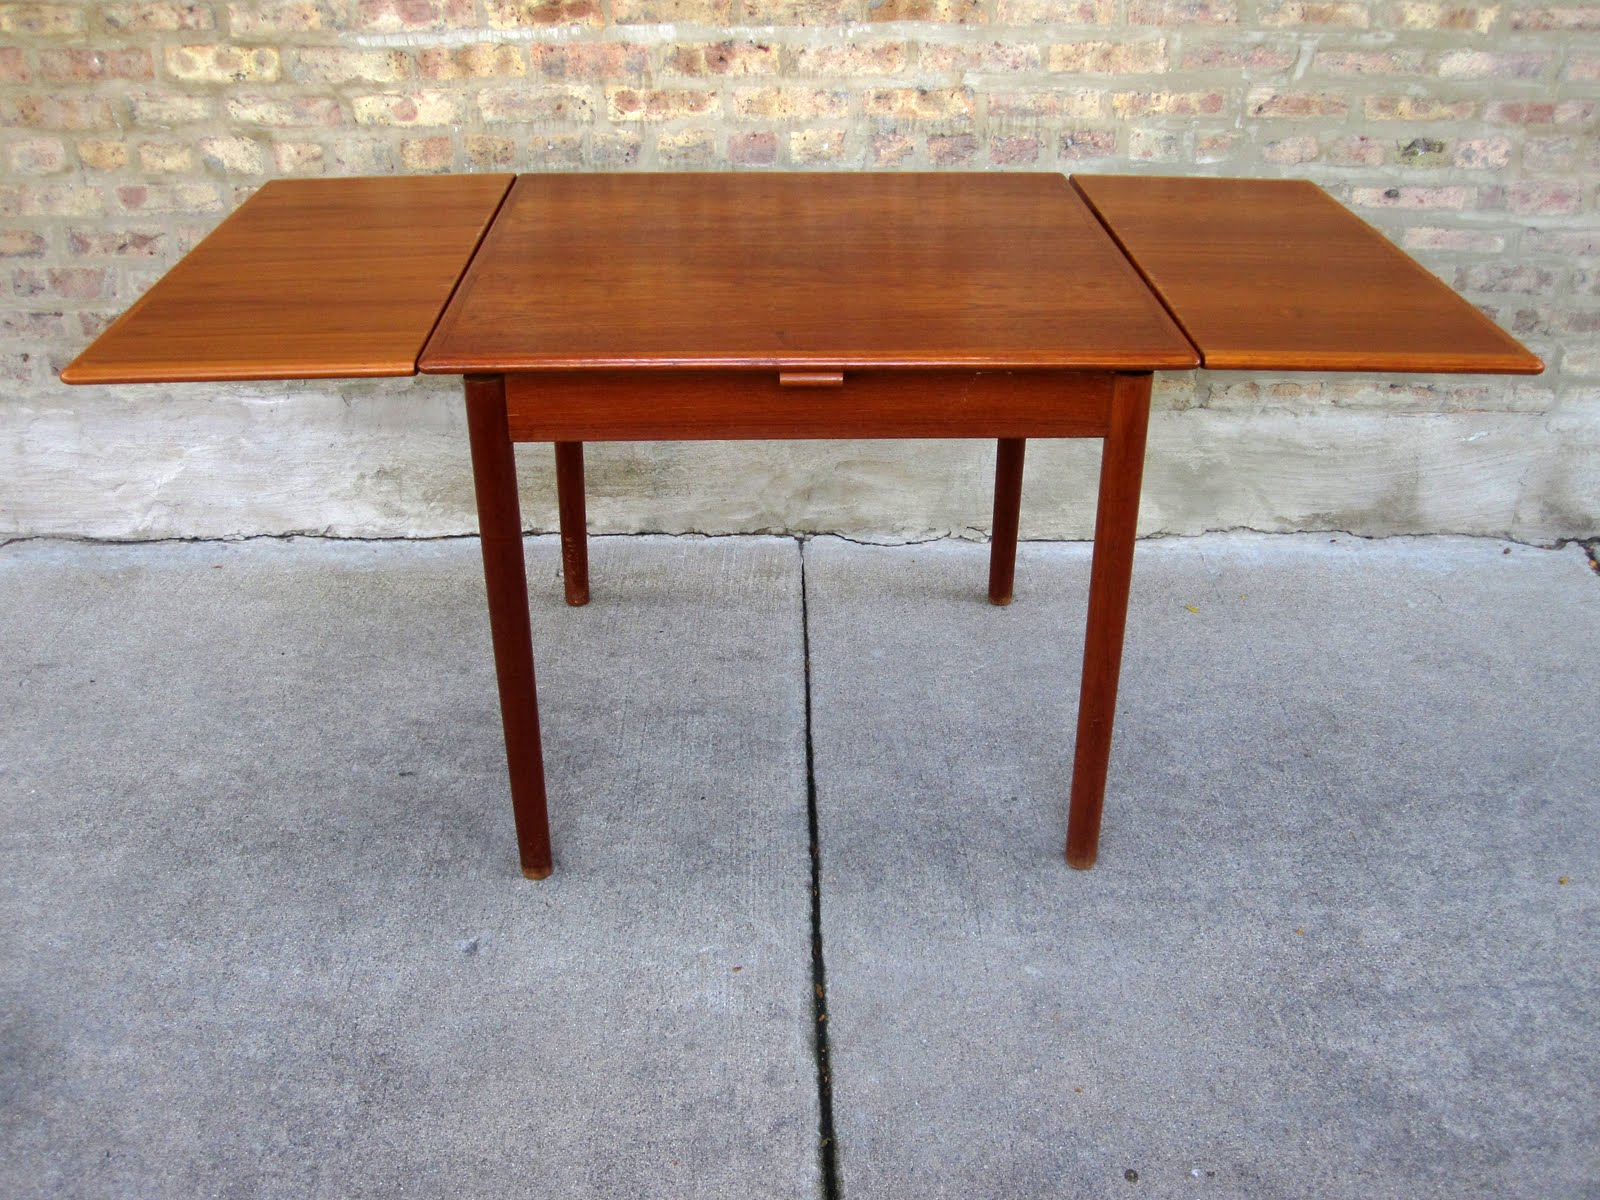 circa midcentury: 'danish modern' teak dining table